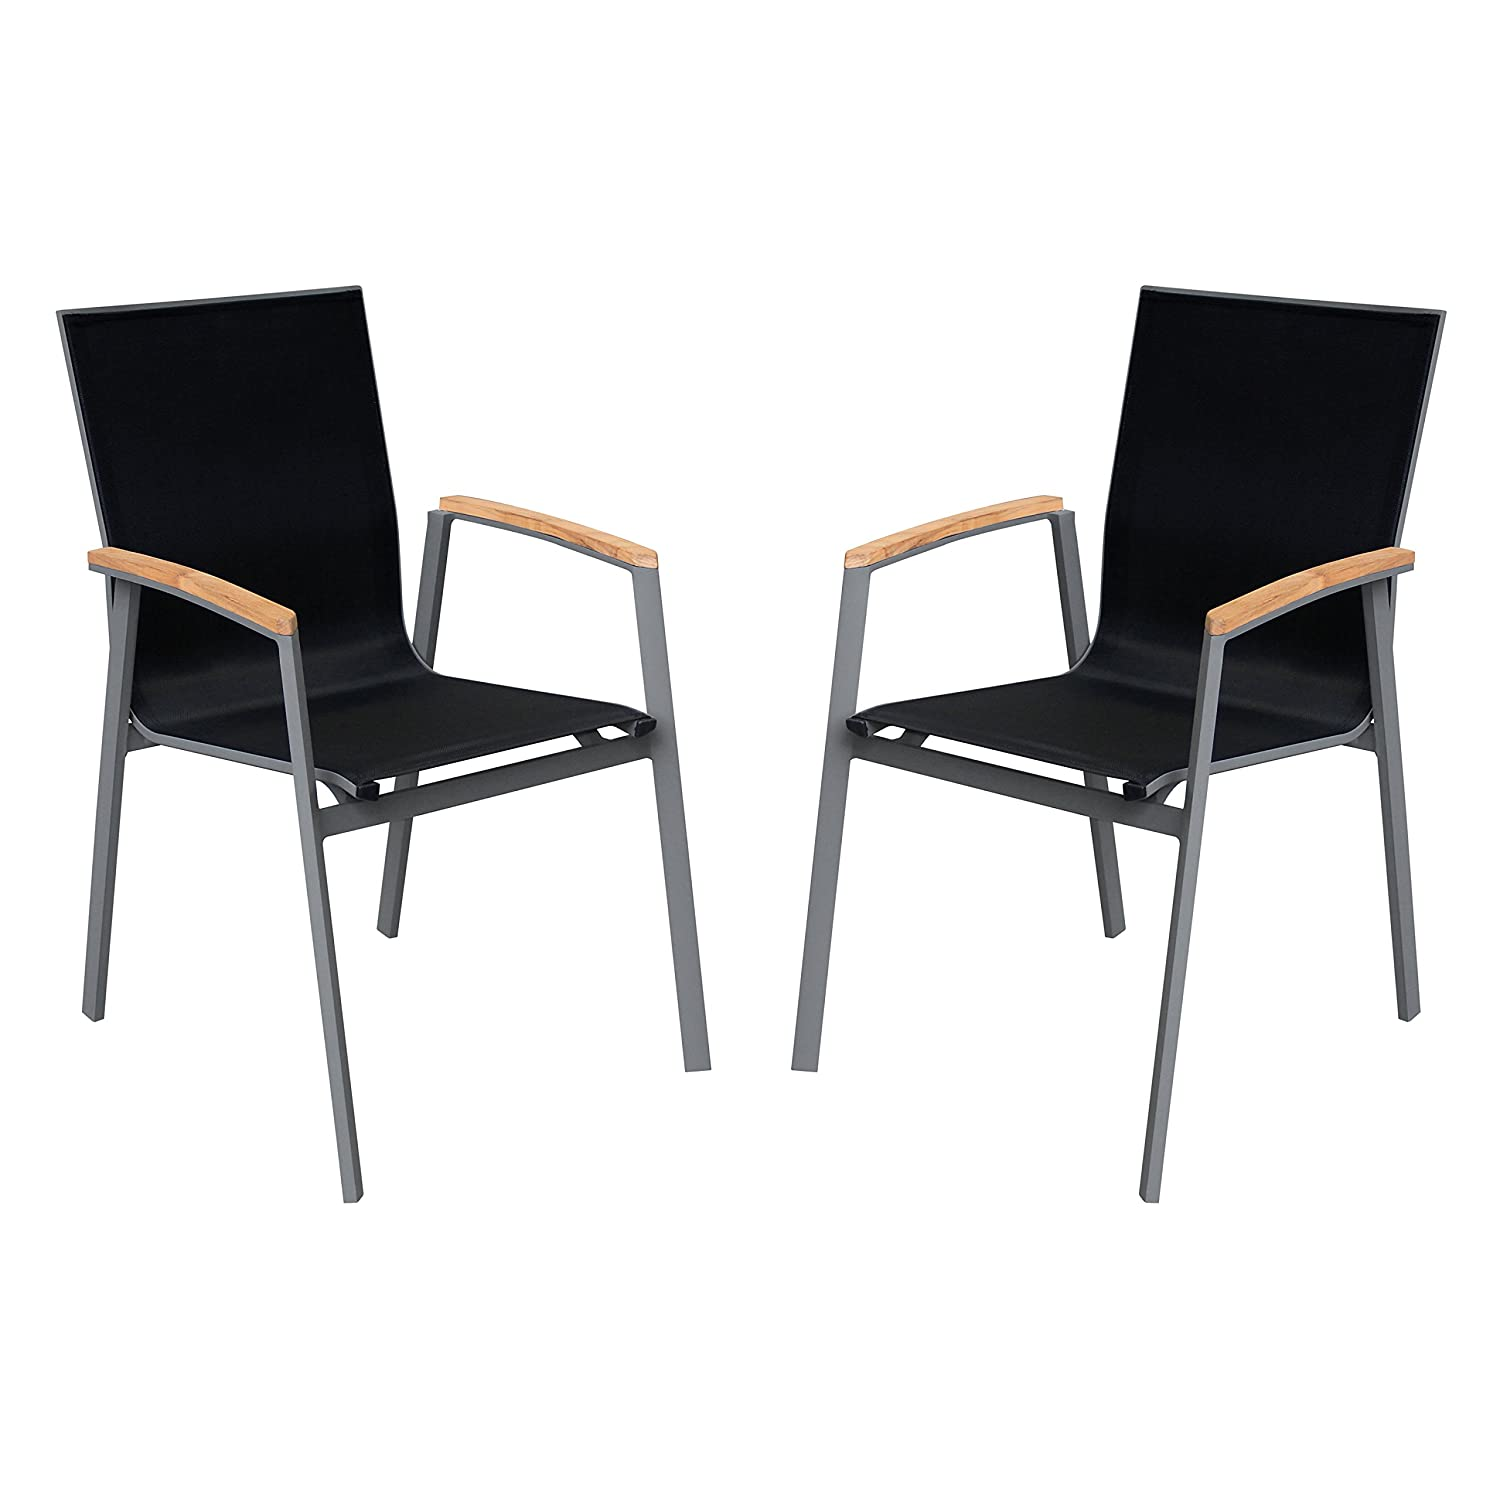 Amazon com armen living lcwechgr westport outdoor dining chair set of 2 in black and black wood finish garden outdoor